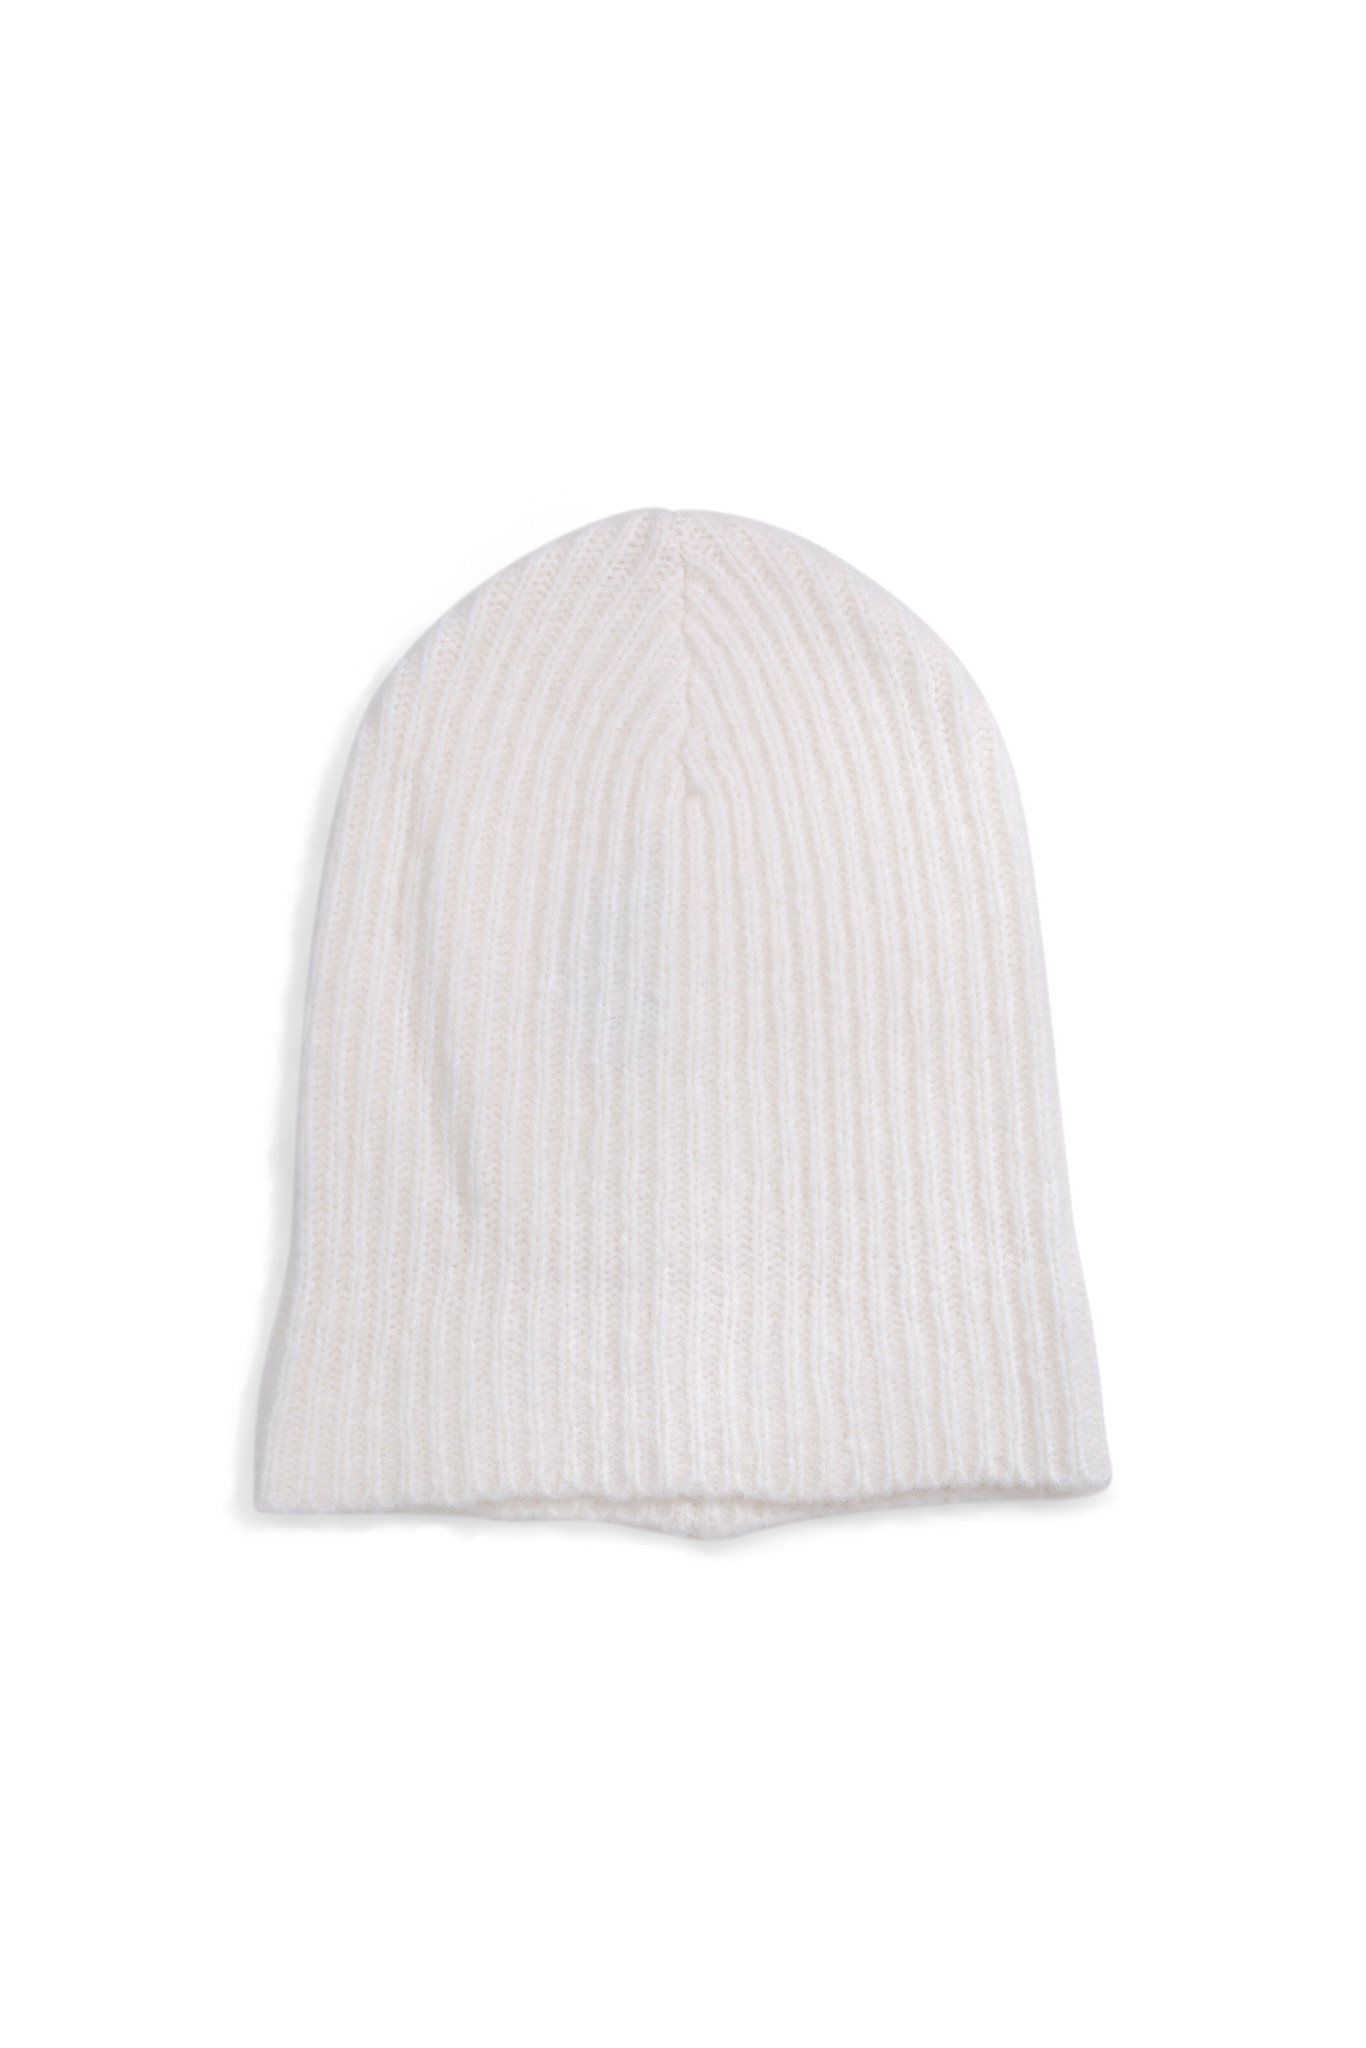 Nimbo Hat - Off White-2